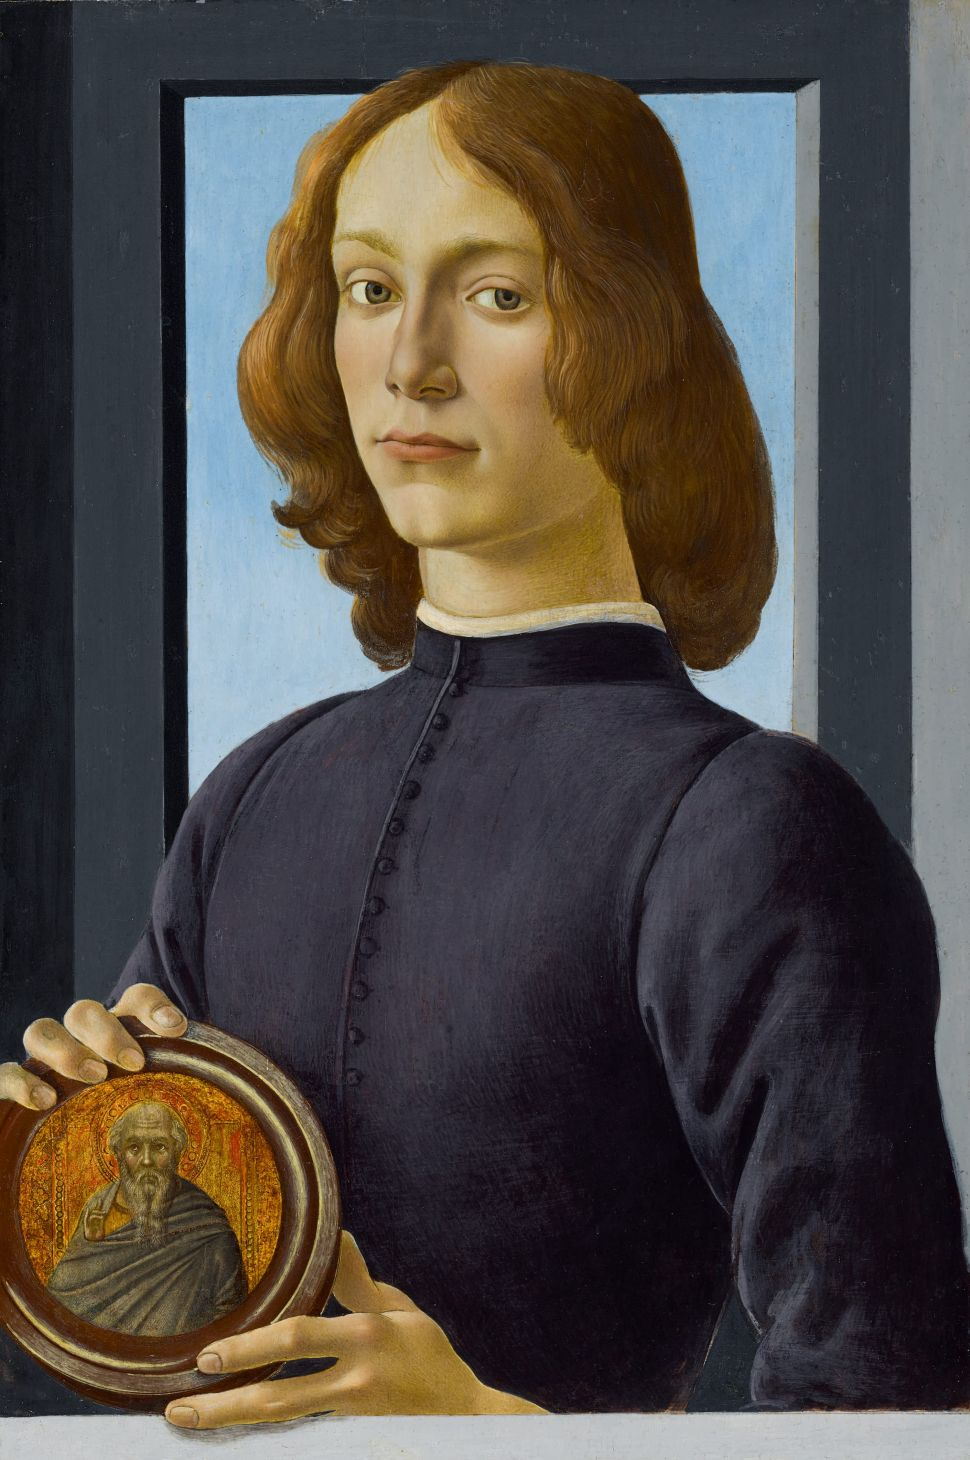 Beyond Face Value: Why This Botticelli Portrait Is Worth $80 Million